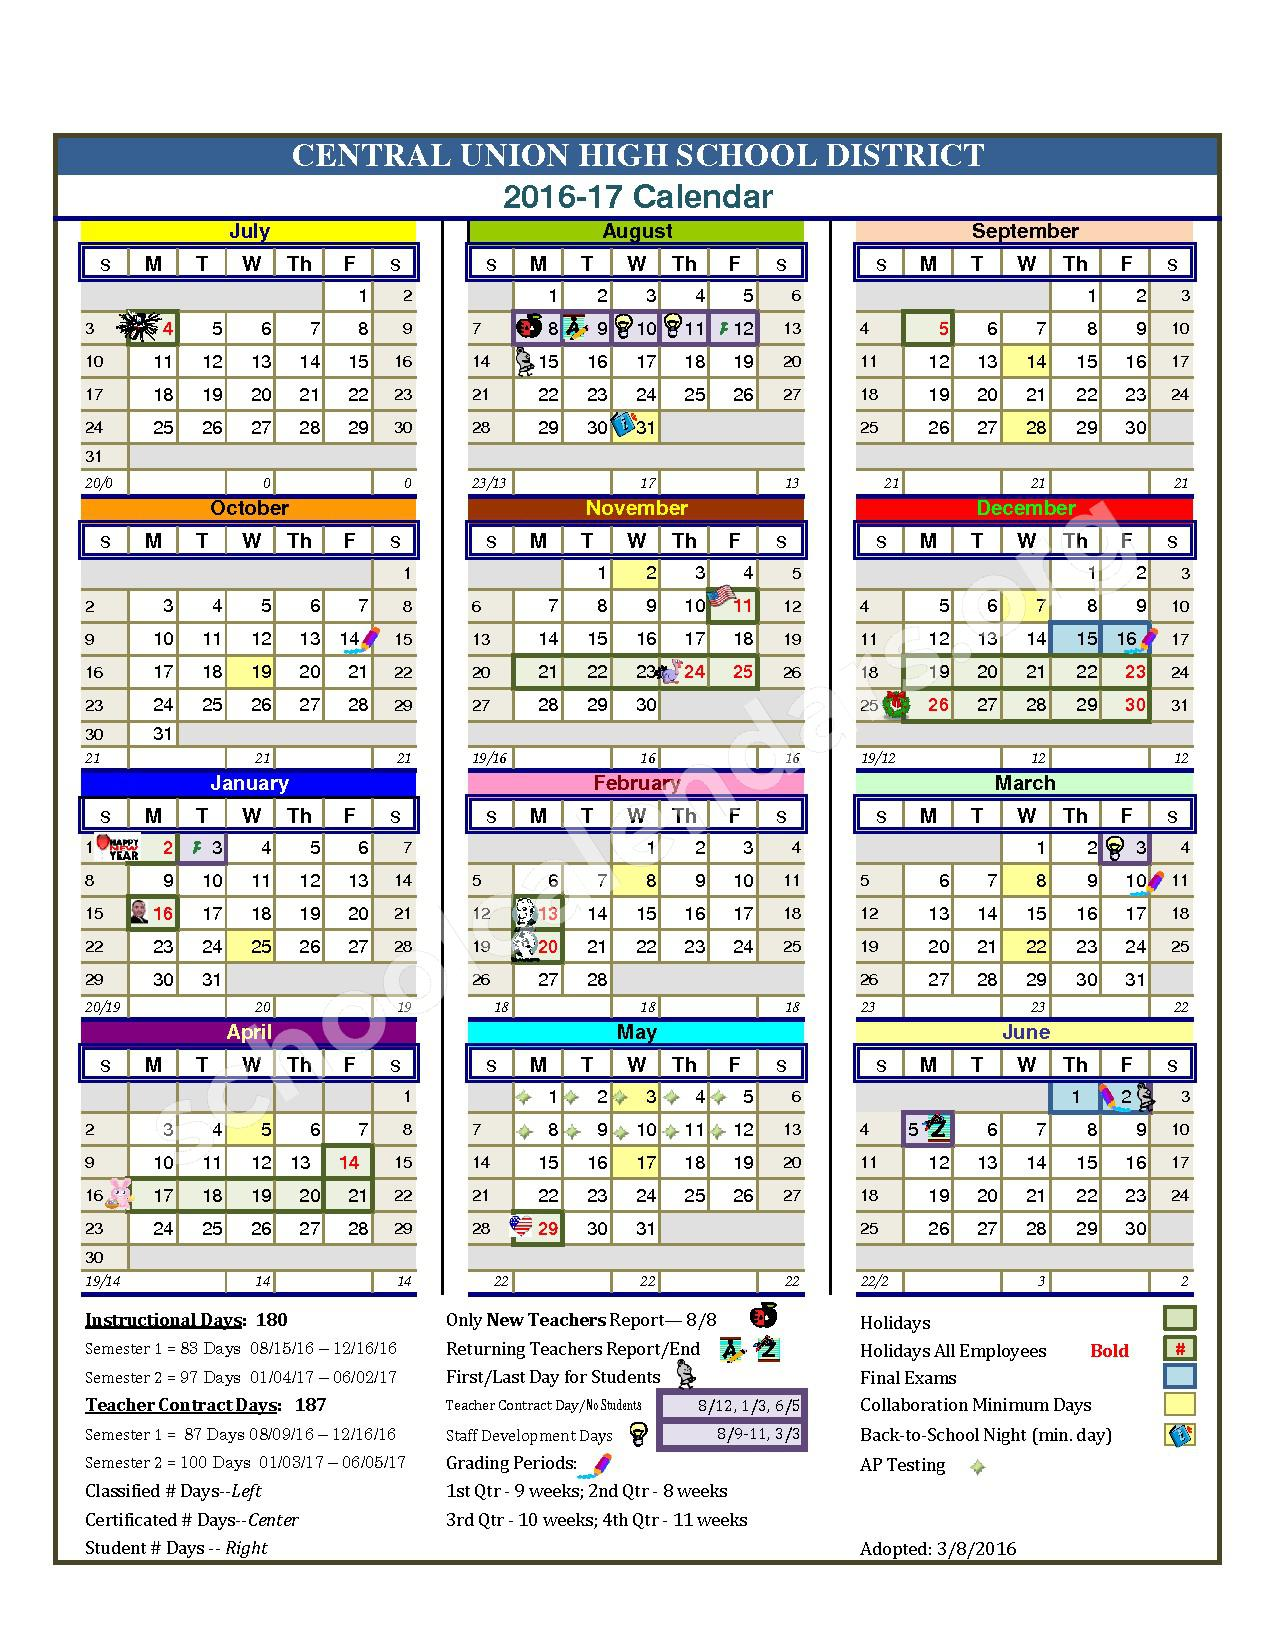 bremen high school calendar 2017